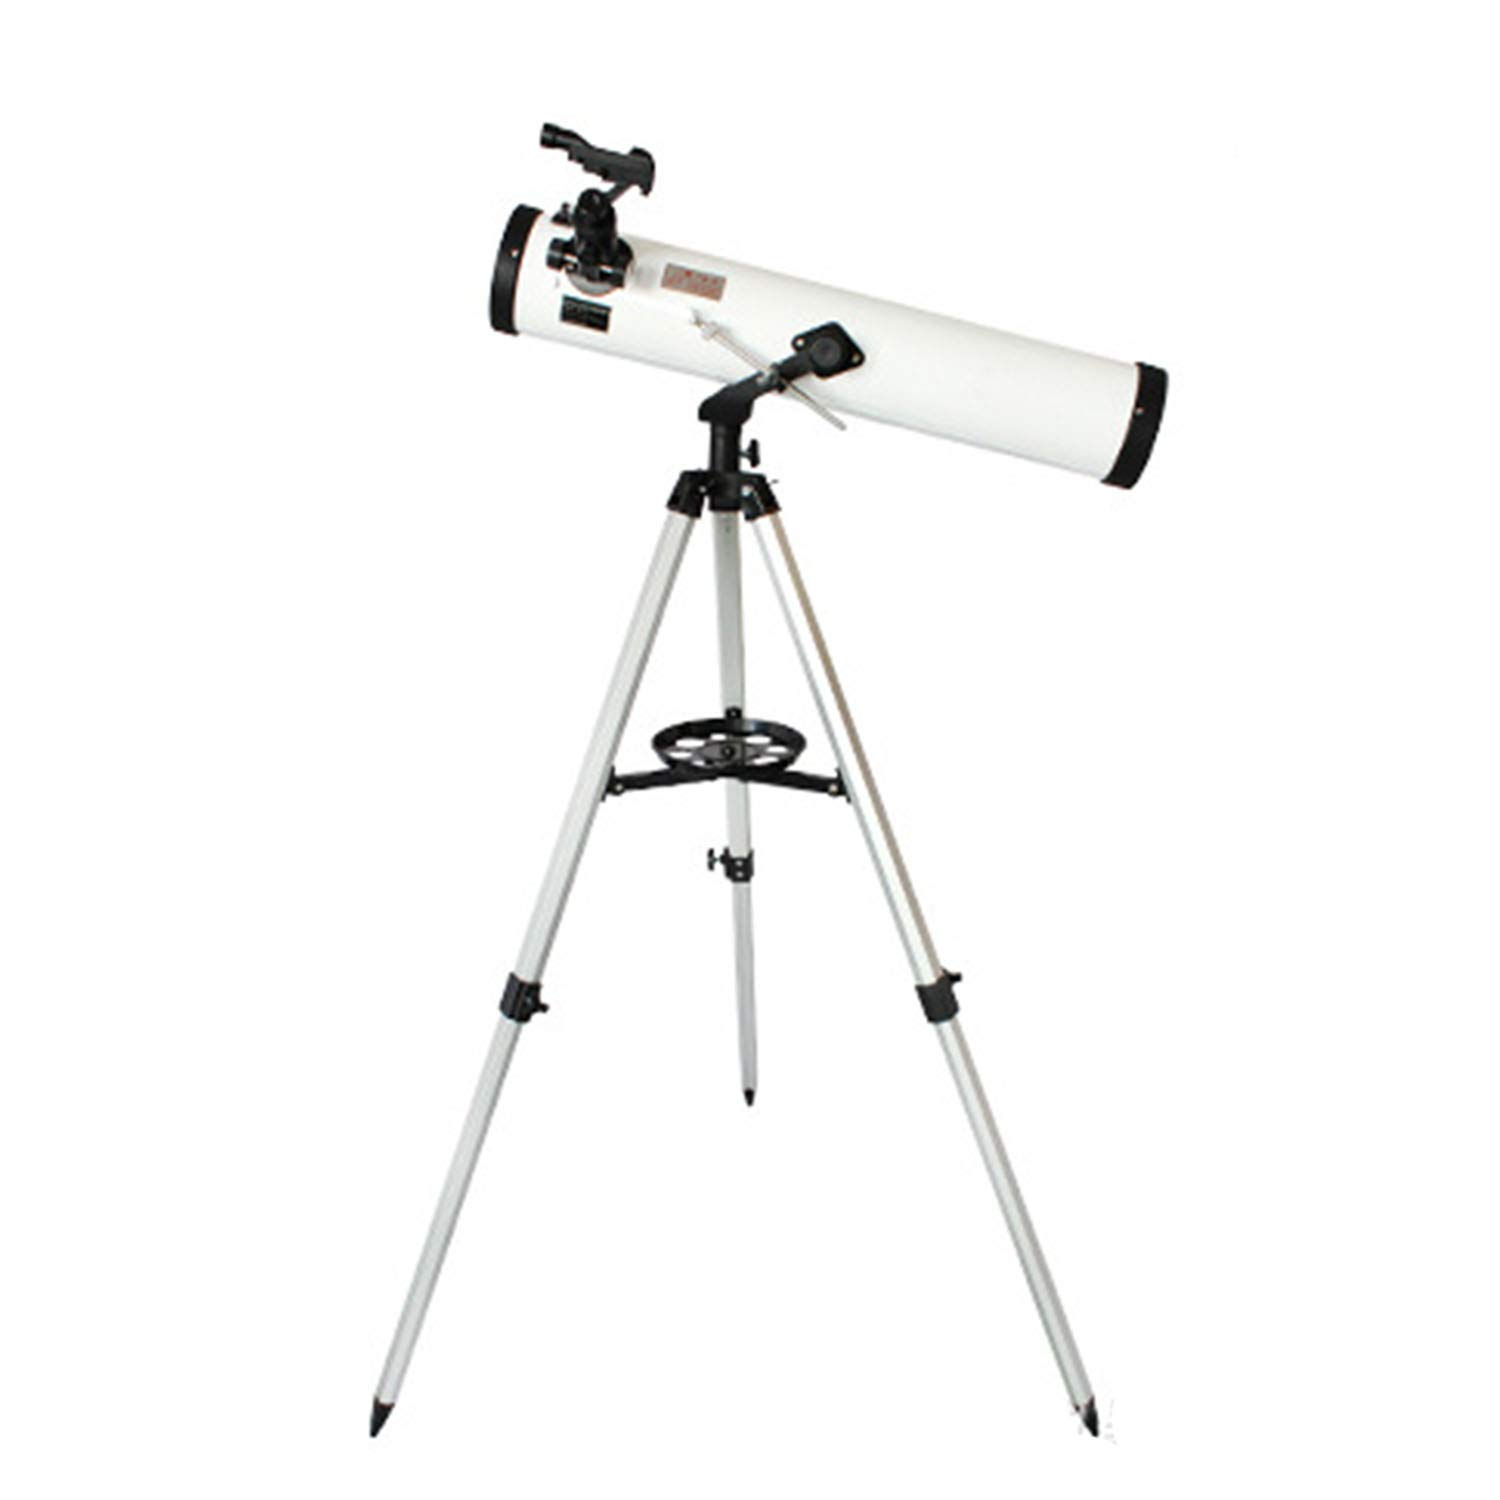 YAMADIE Astronomical Telescope HD High Power Low Light Level Night Vision Star View by YAMADIE